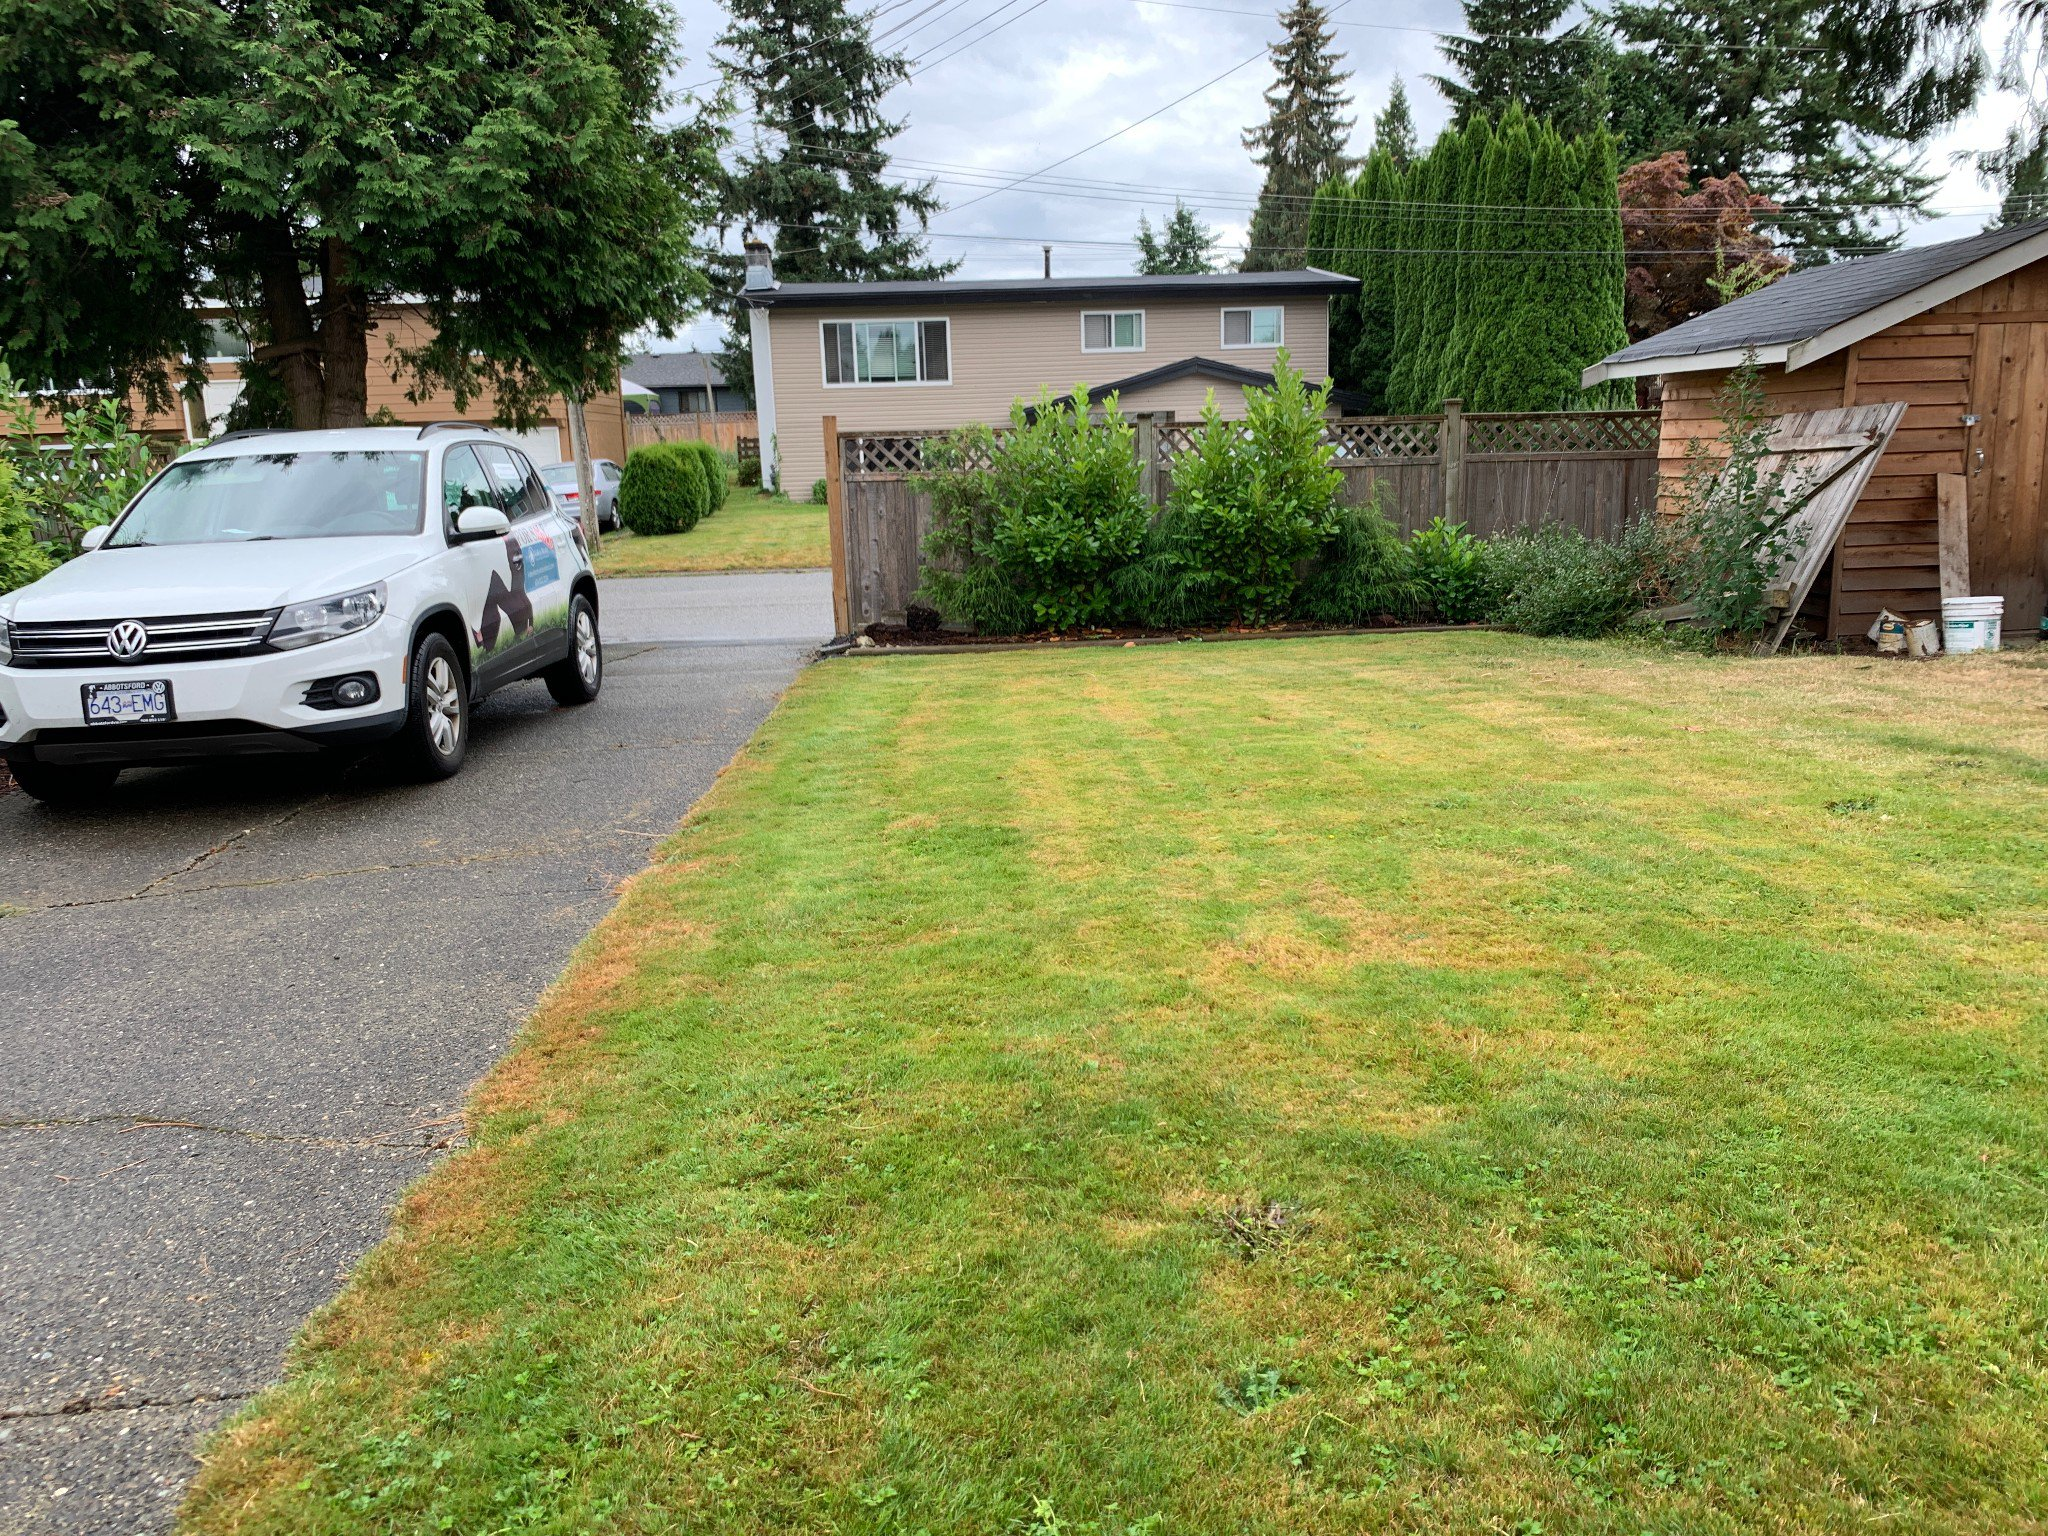 Photo 1: Photos: BSMT 2046 Ridgeway St. in Abbotsford: Central Abbotsford Condo for rent